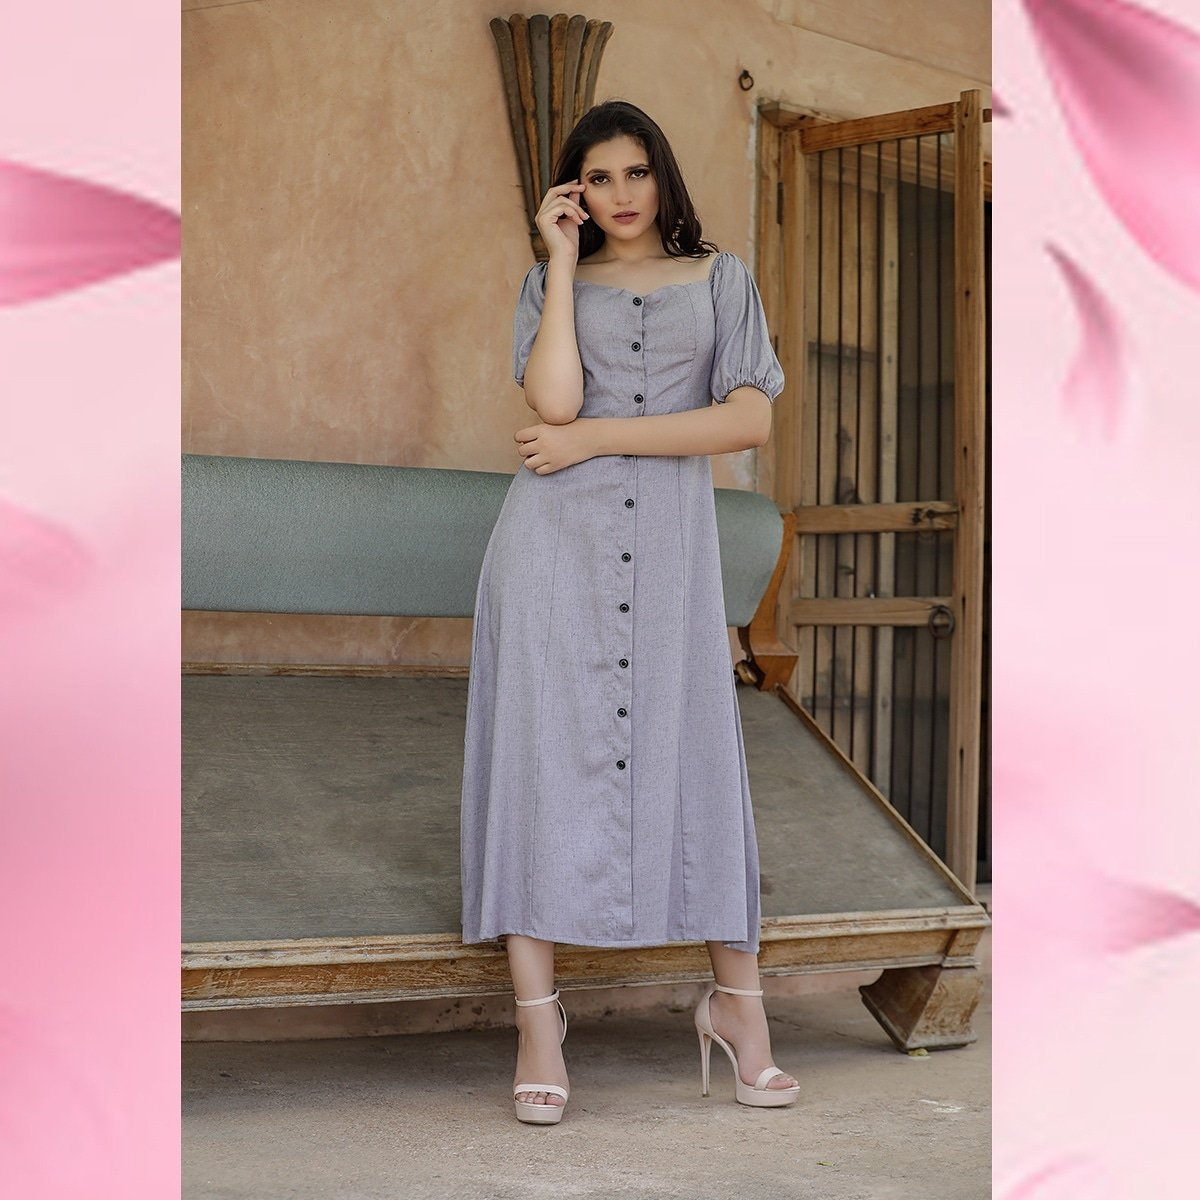 In a world full of trends, always remain a classic.💜 #newcollection #fashion #style #moda #new #shopping #love #ootd #instafashion #fw #outfit #handmade #outfitoftheday #fashionblogger #spring #summer #madeinindia #springsummer #shoes #fashioninsta #dress #like #follow